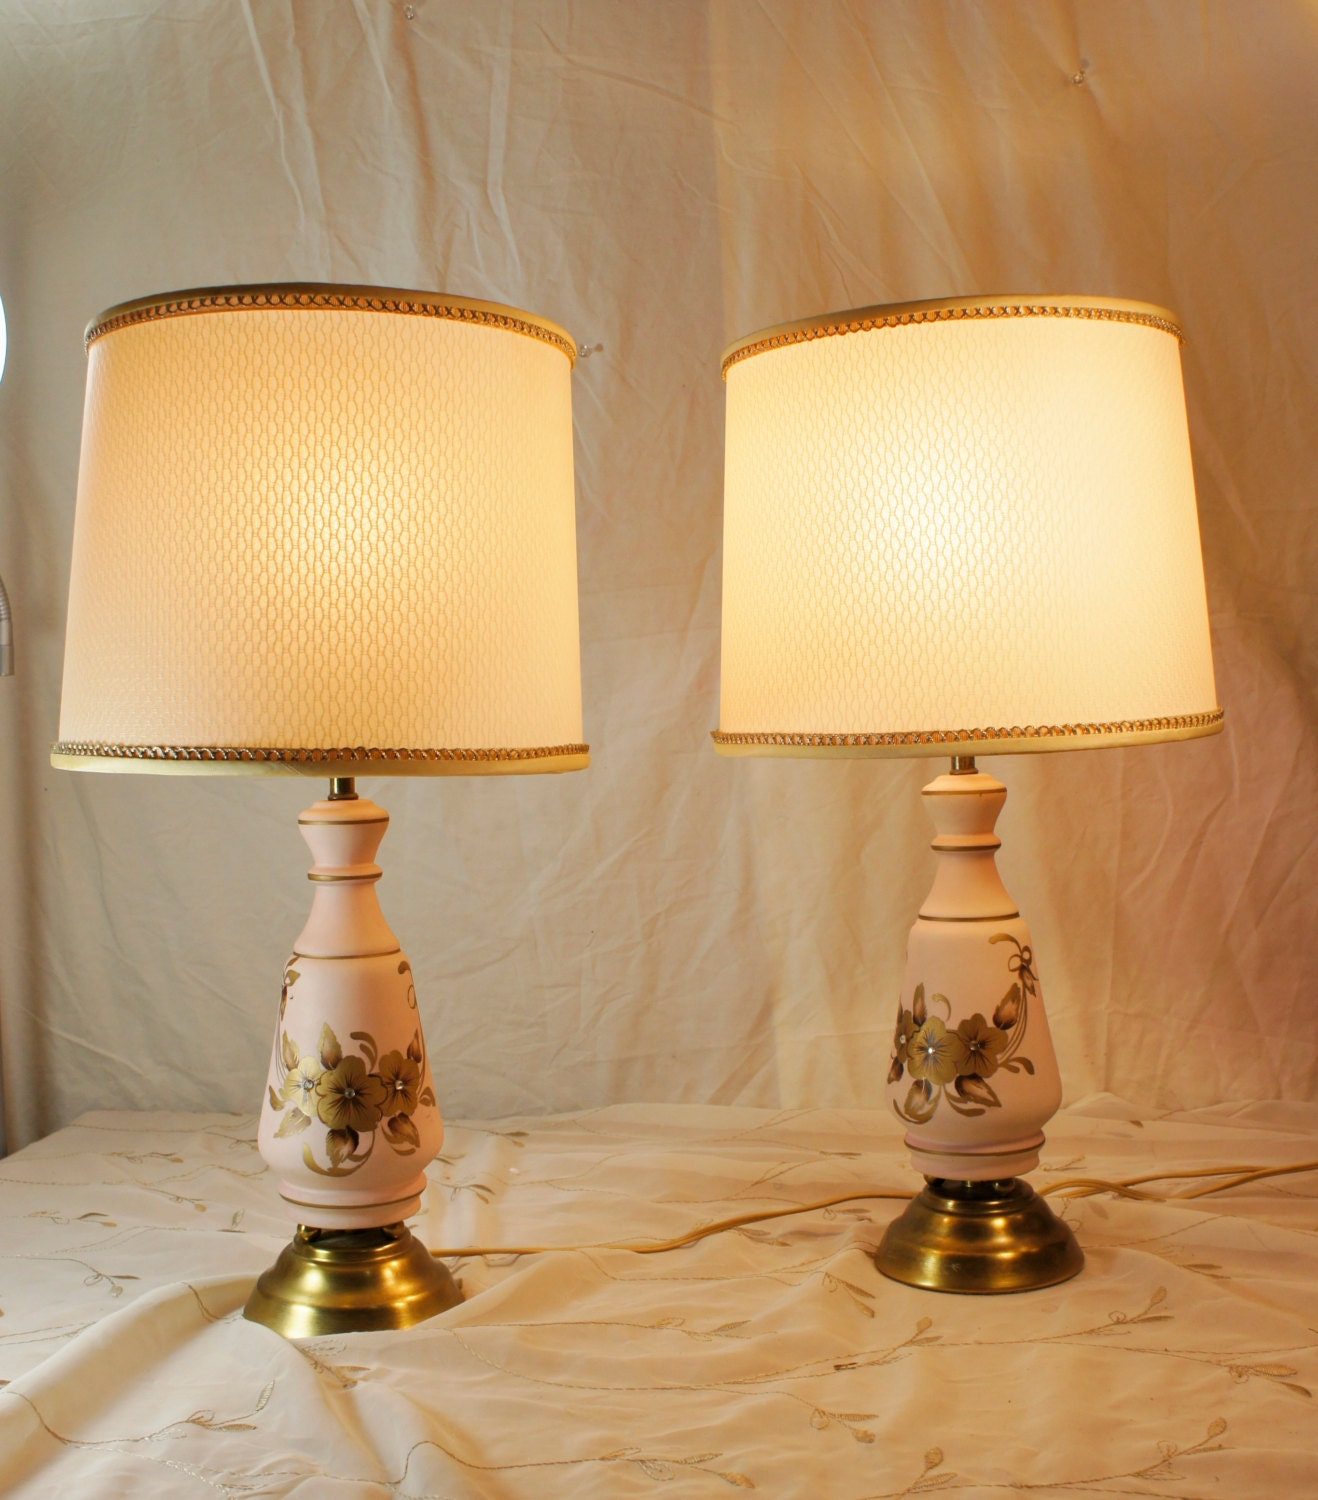 Wall Lamp Shades For Bedroom : pair pink and gold bedroom lamps with shades flowers by gleaned